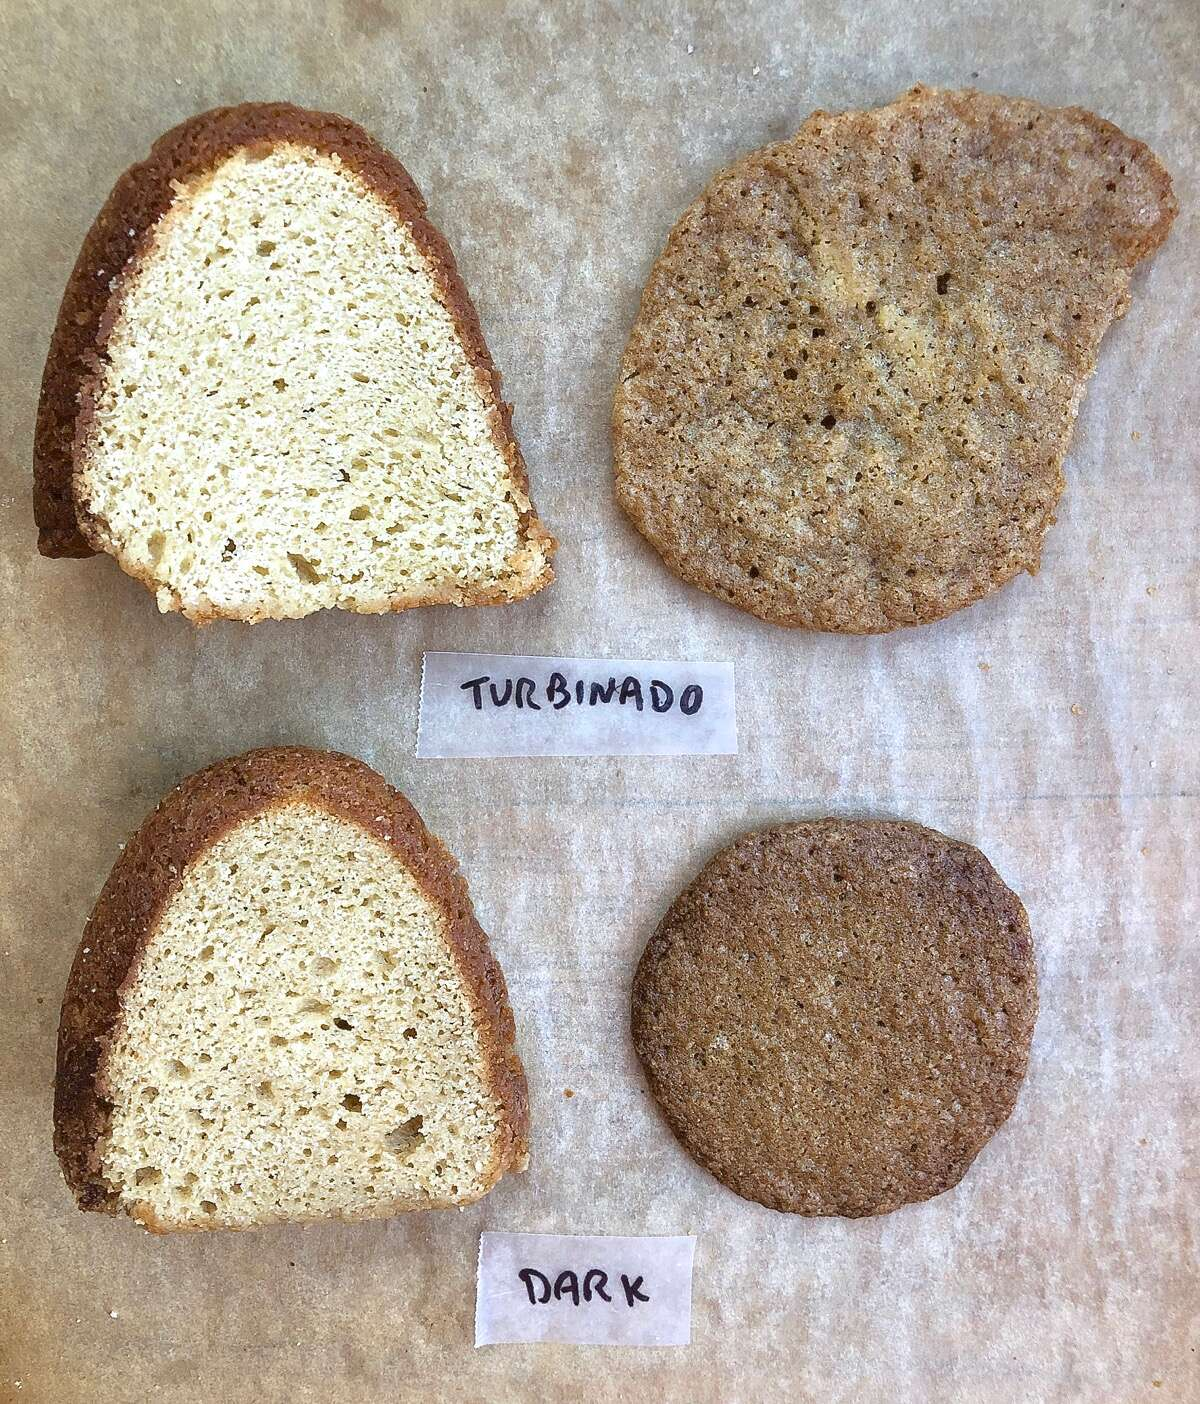 Slice of pound cake and a cookie made with turbinado sugar, vs. made with dark brown sugar, to show the differences.